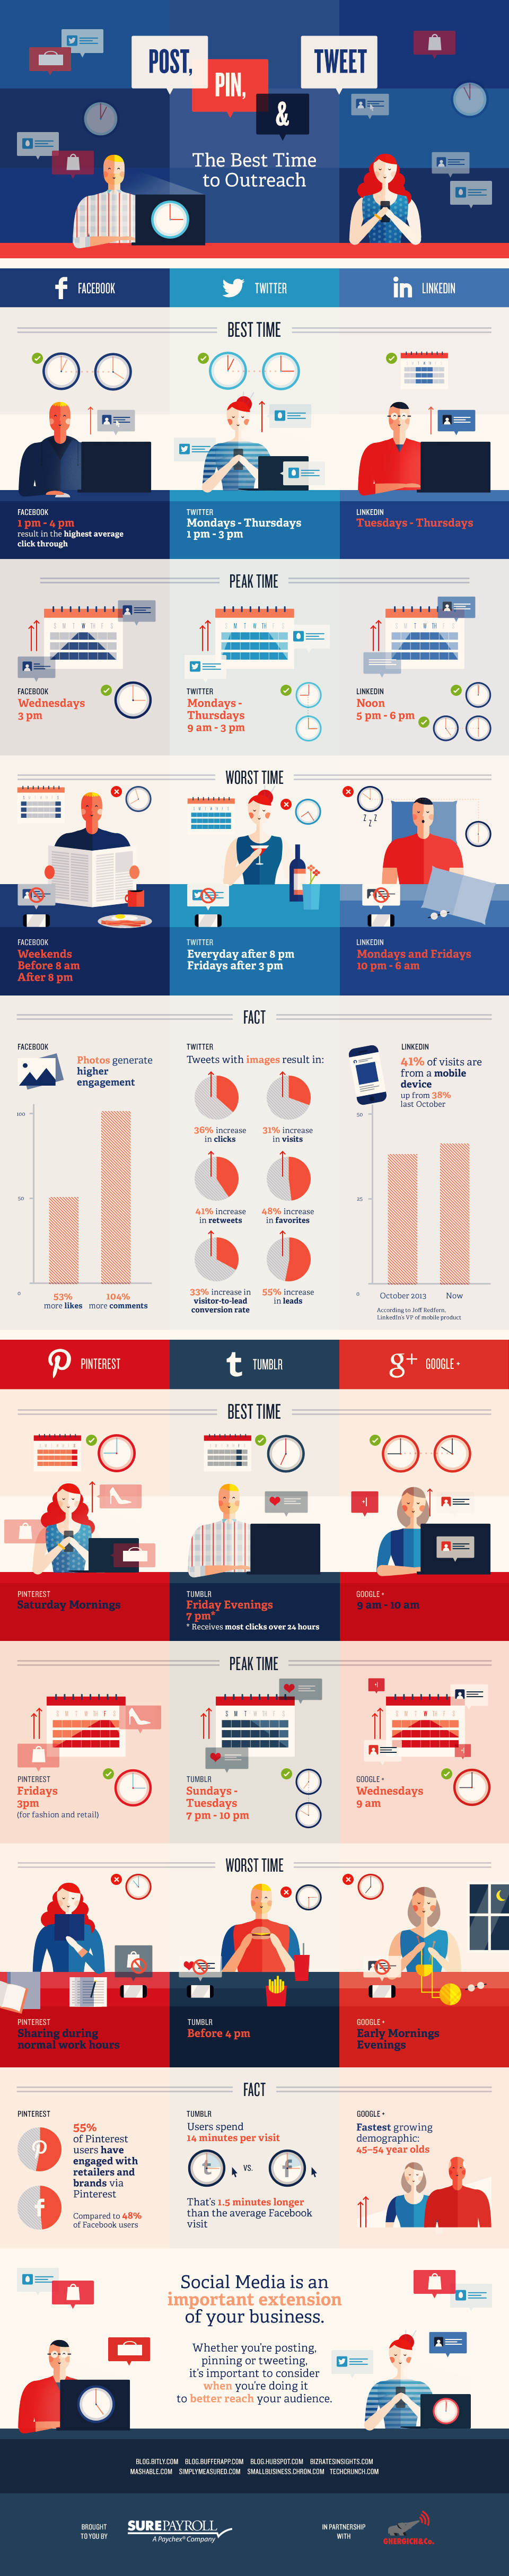 Advisors: Reach your Prospects by Posting at Optimal Times Infographic